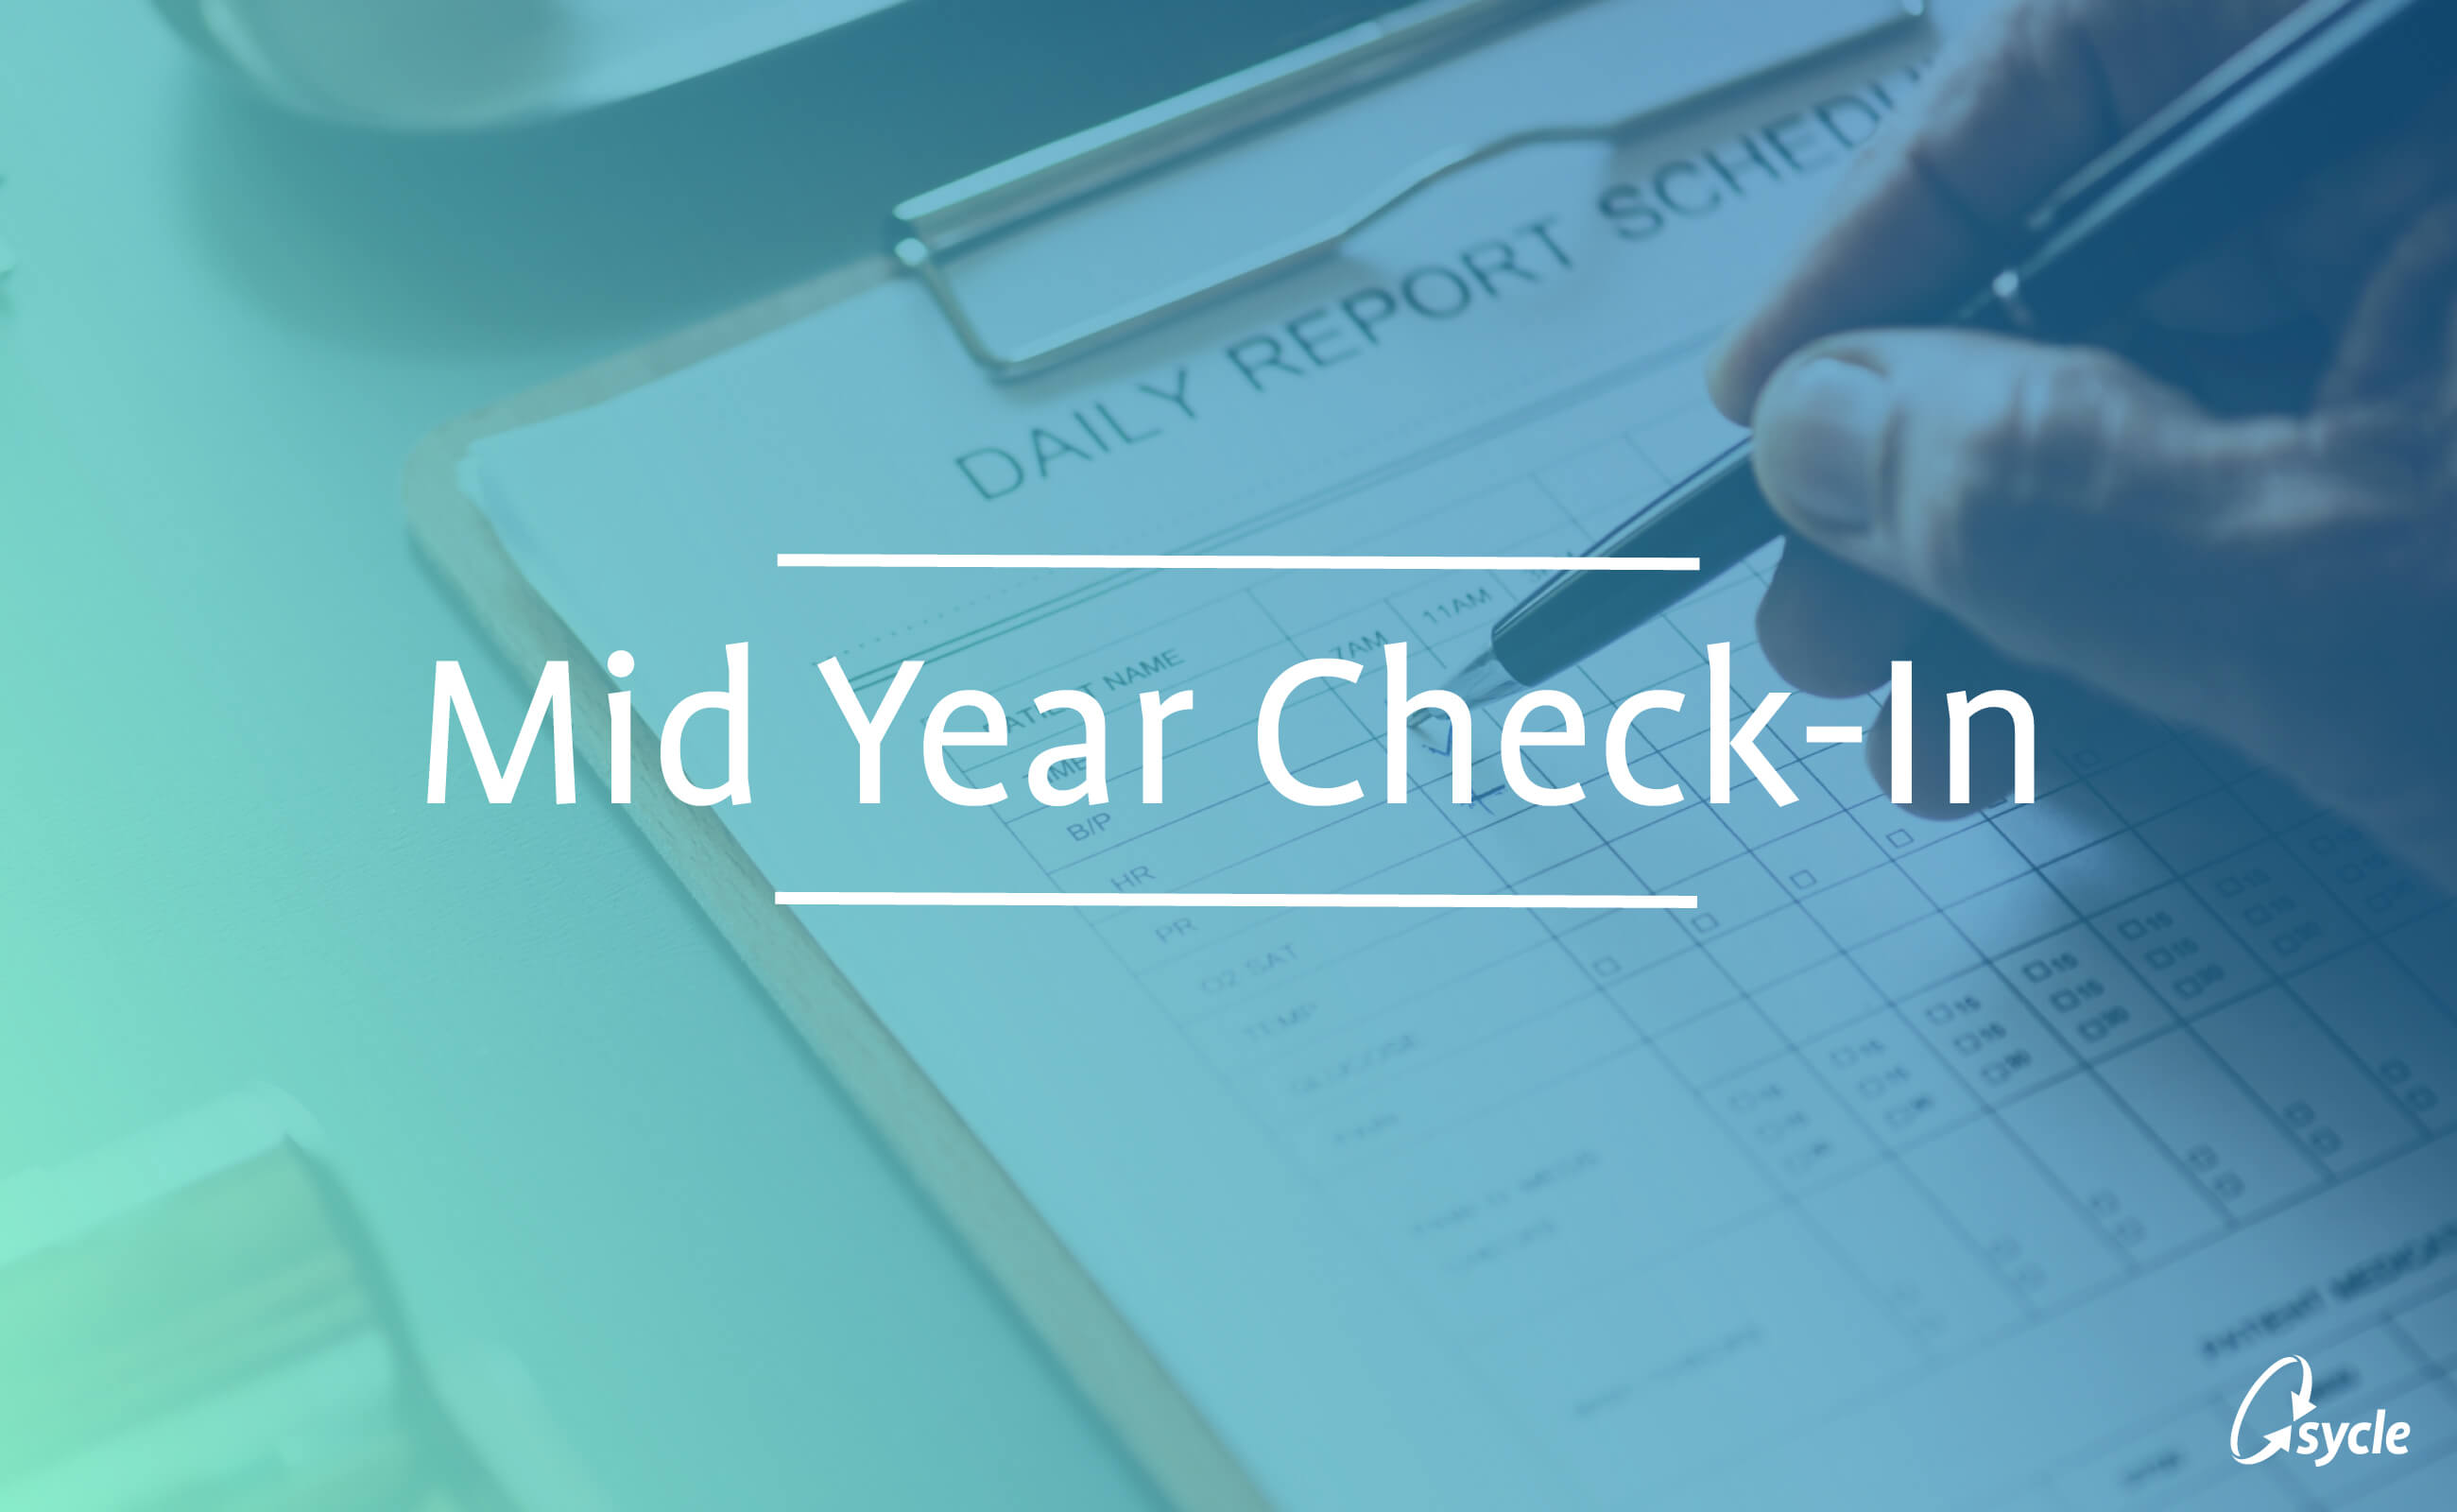 A Mid-Year Goal Check with Sycle image